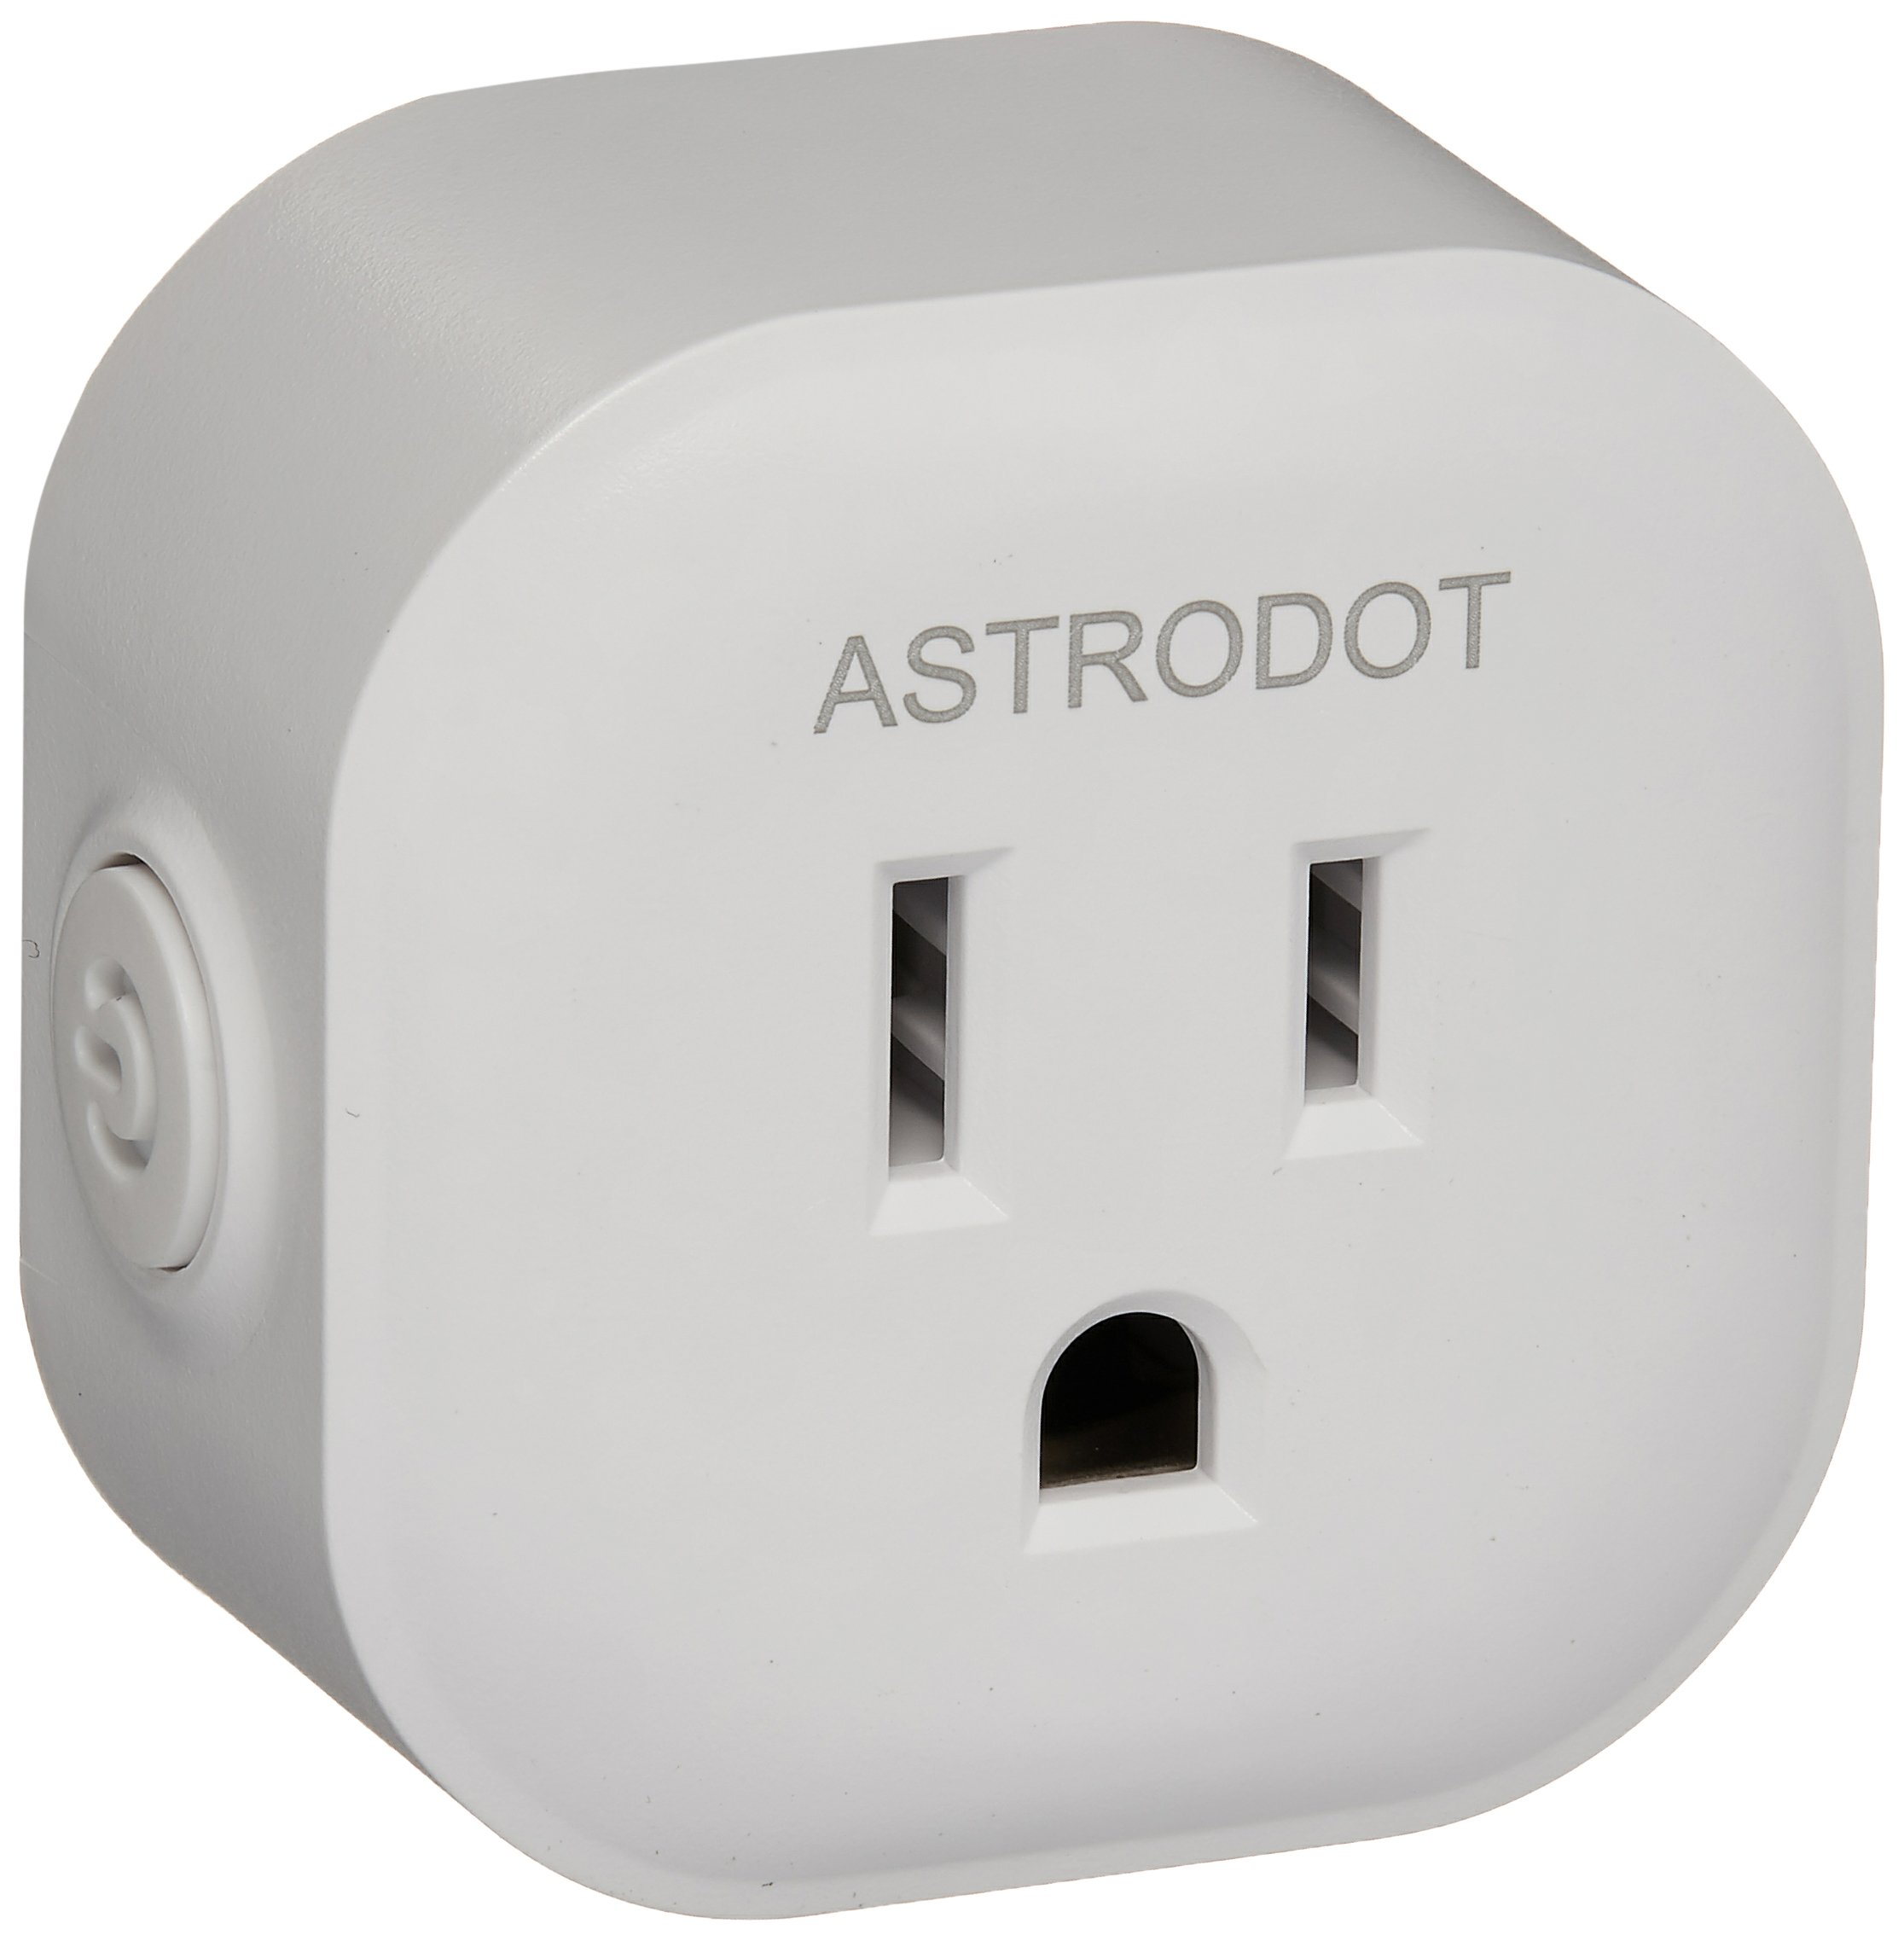 Wifi Smart Plug Mini, Astrodot Smart Home Power Control Socket, Remote Control Your Household Equipment from Everywhere, No Hub Required, Compatible with Alexa, Echo Dot & Google Home (4 Packs) by ASTRODOT (Image #1)